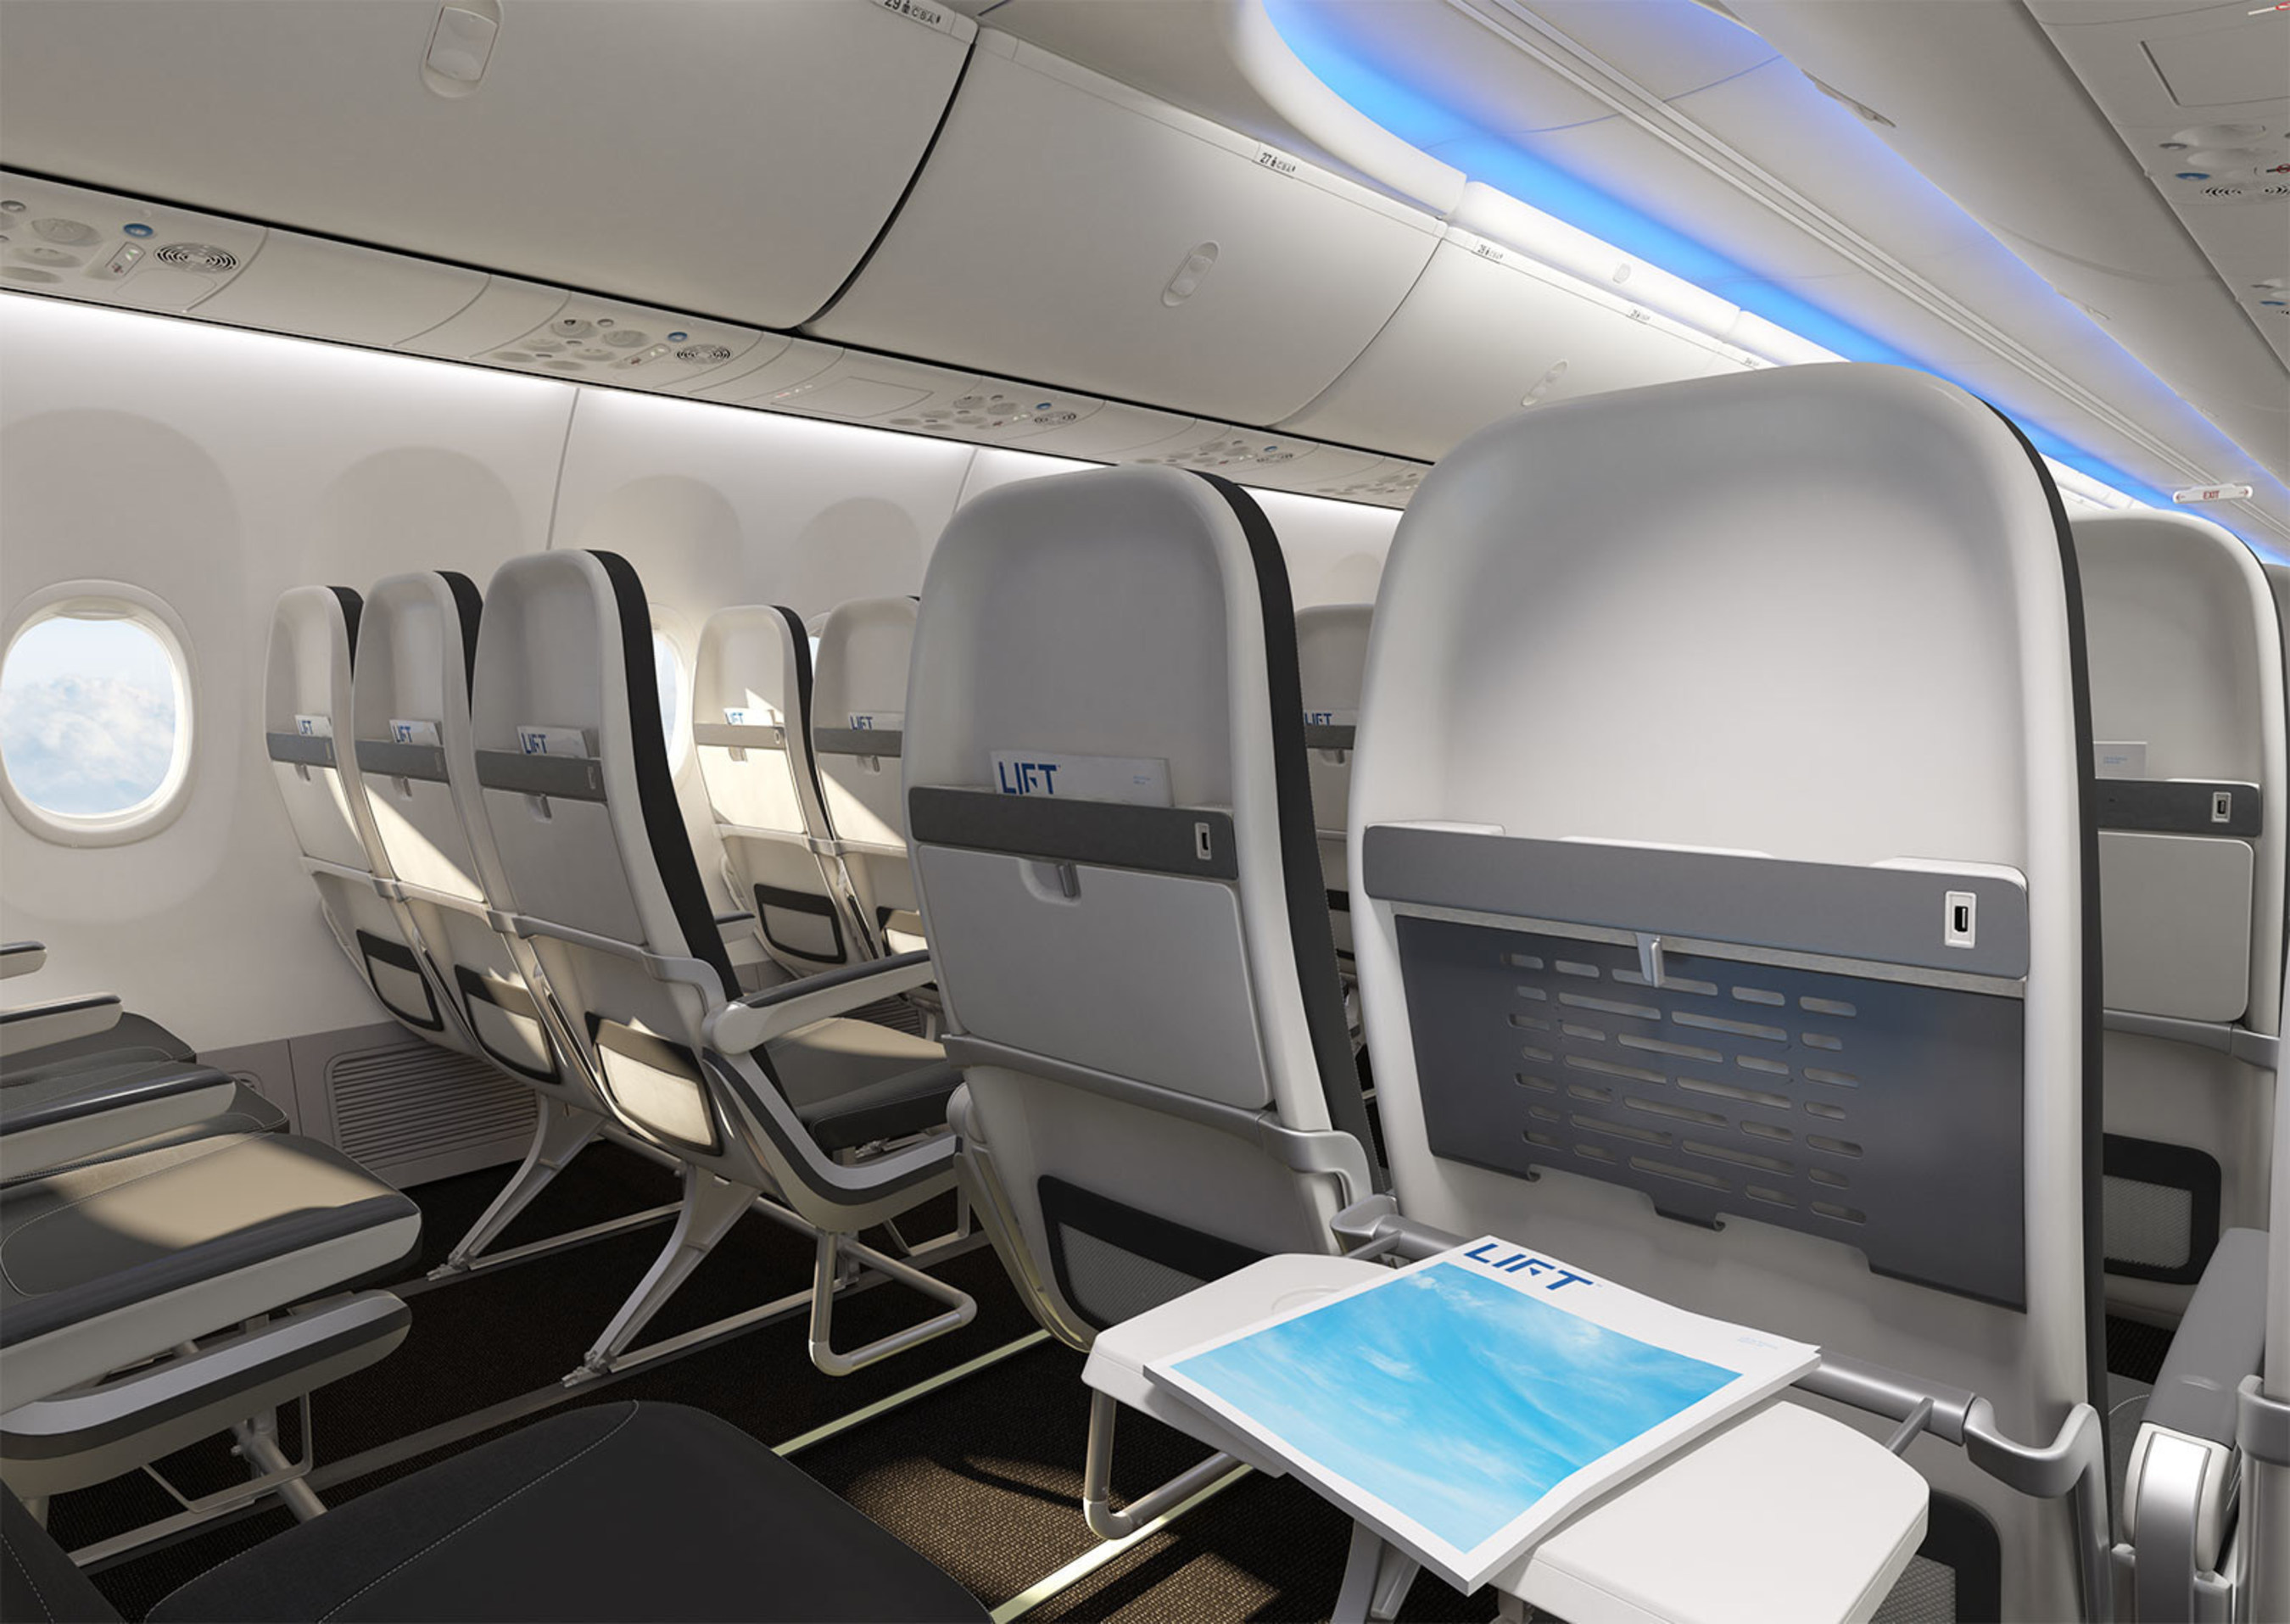 LIFT by EnCore Announces Launch Customers - Inaugural Seats for ...